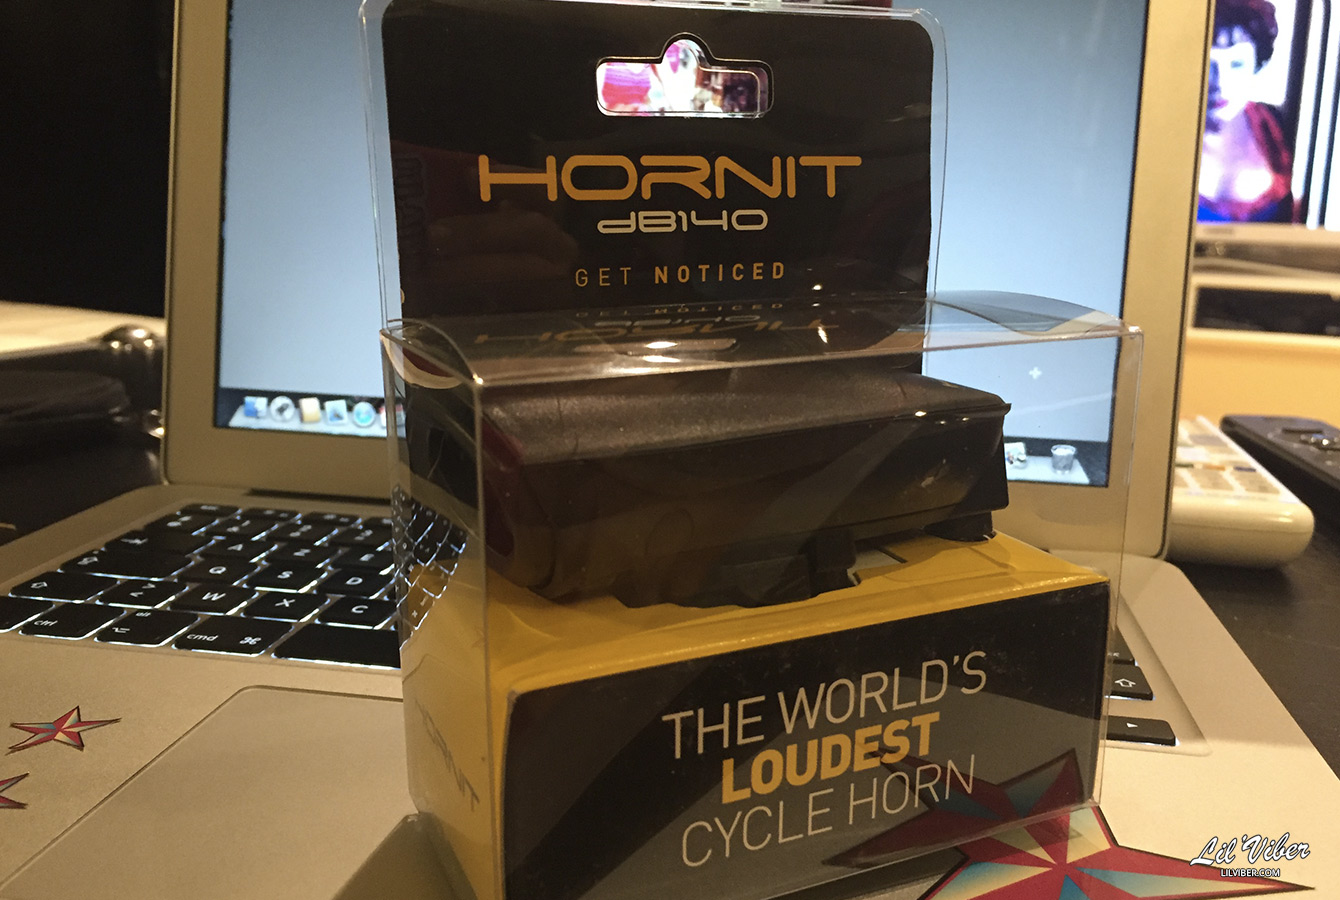 Hornit DB140-The World/'s Plus Cycle Horn-vous faire remarquer!!!